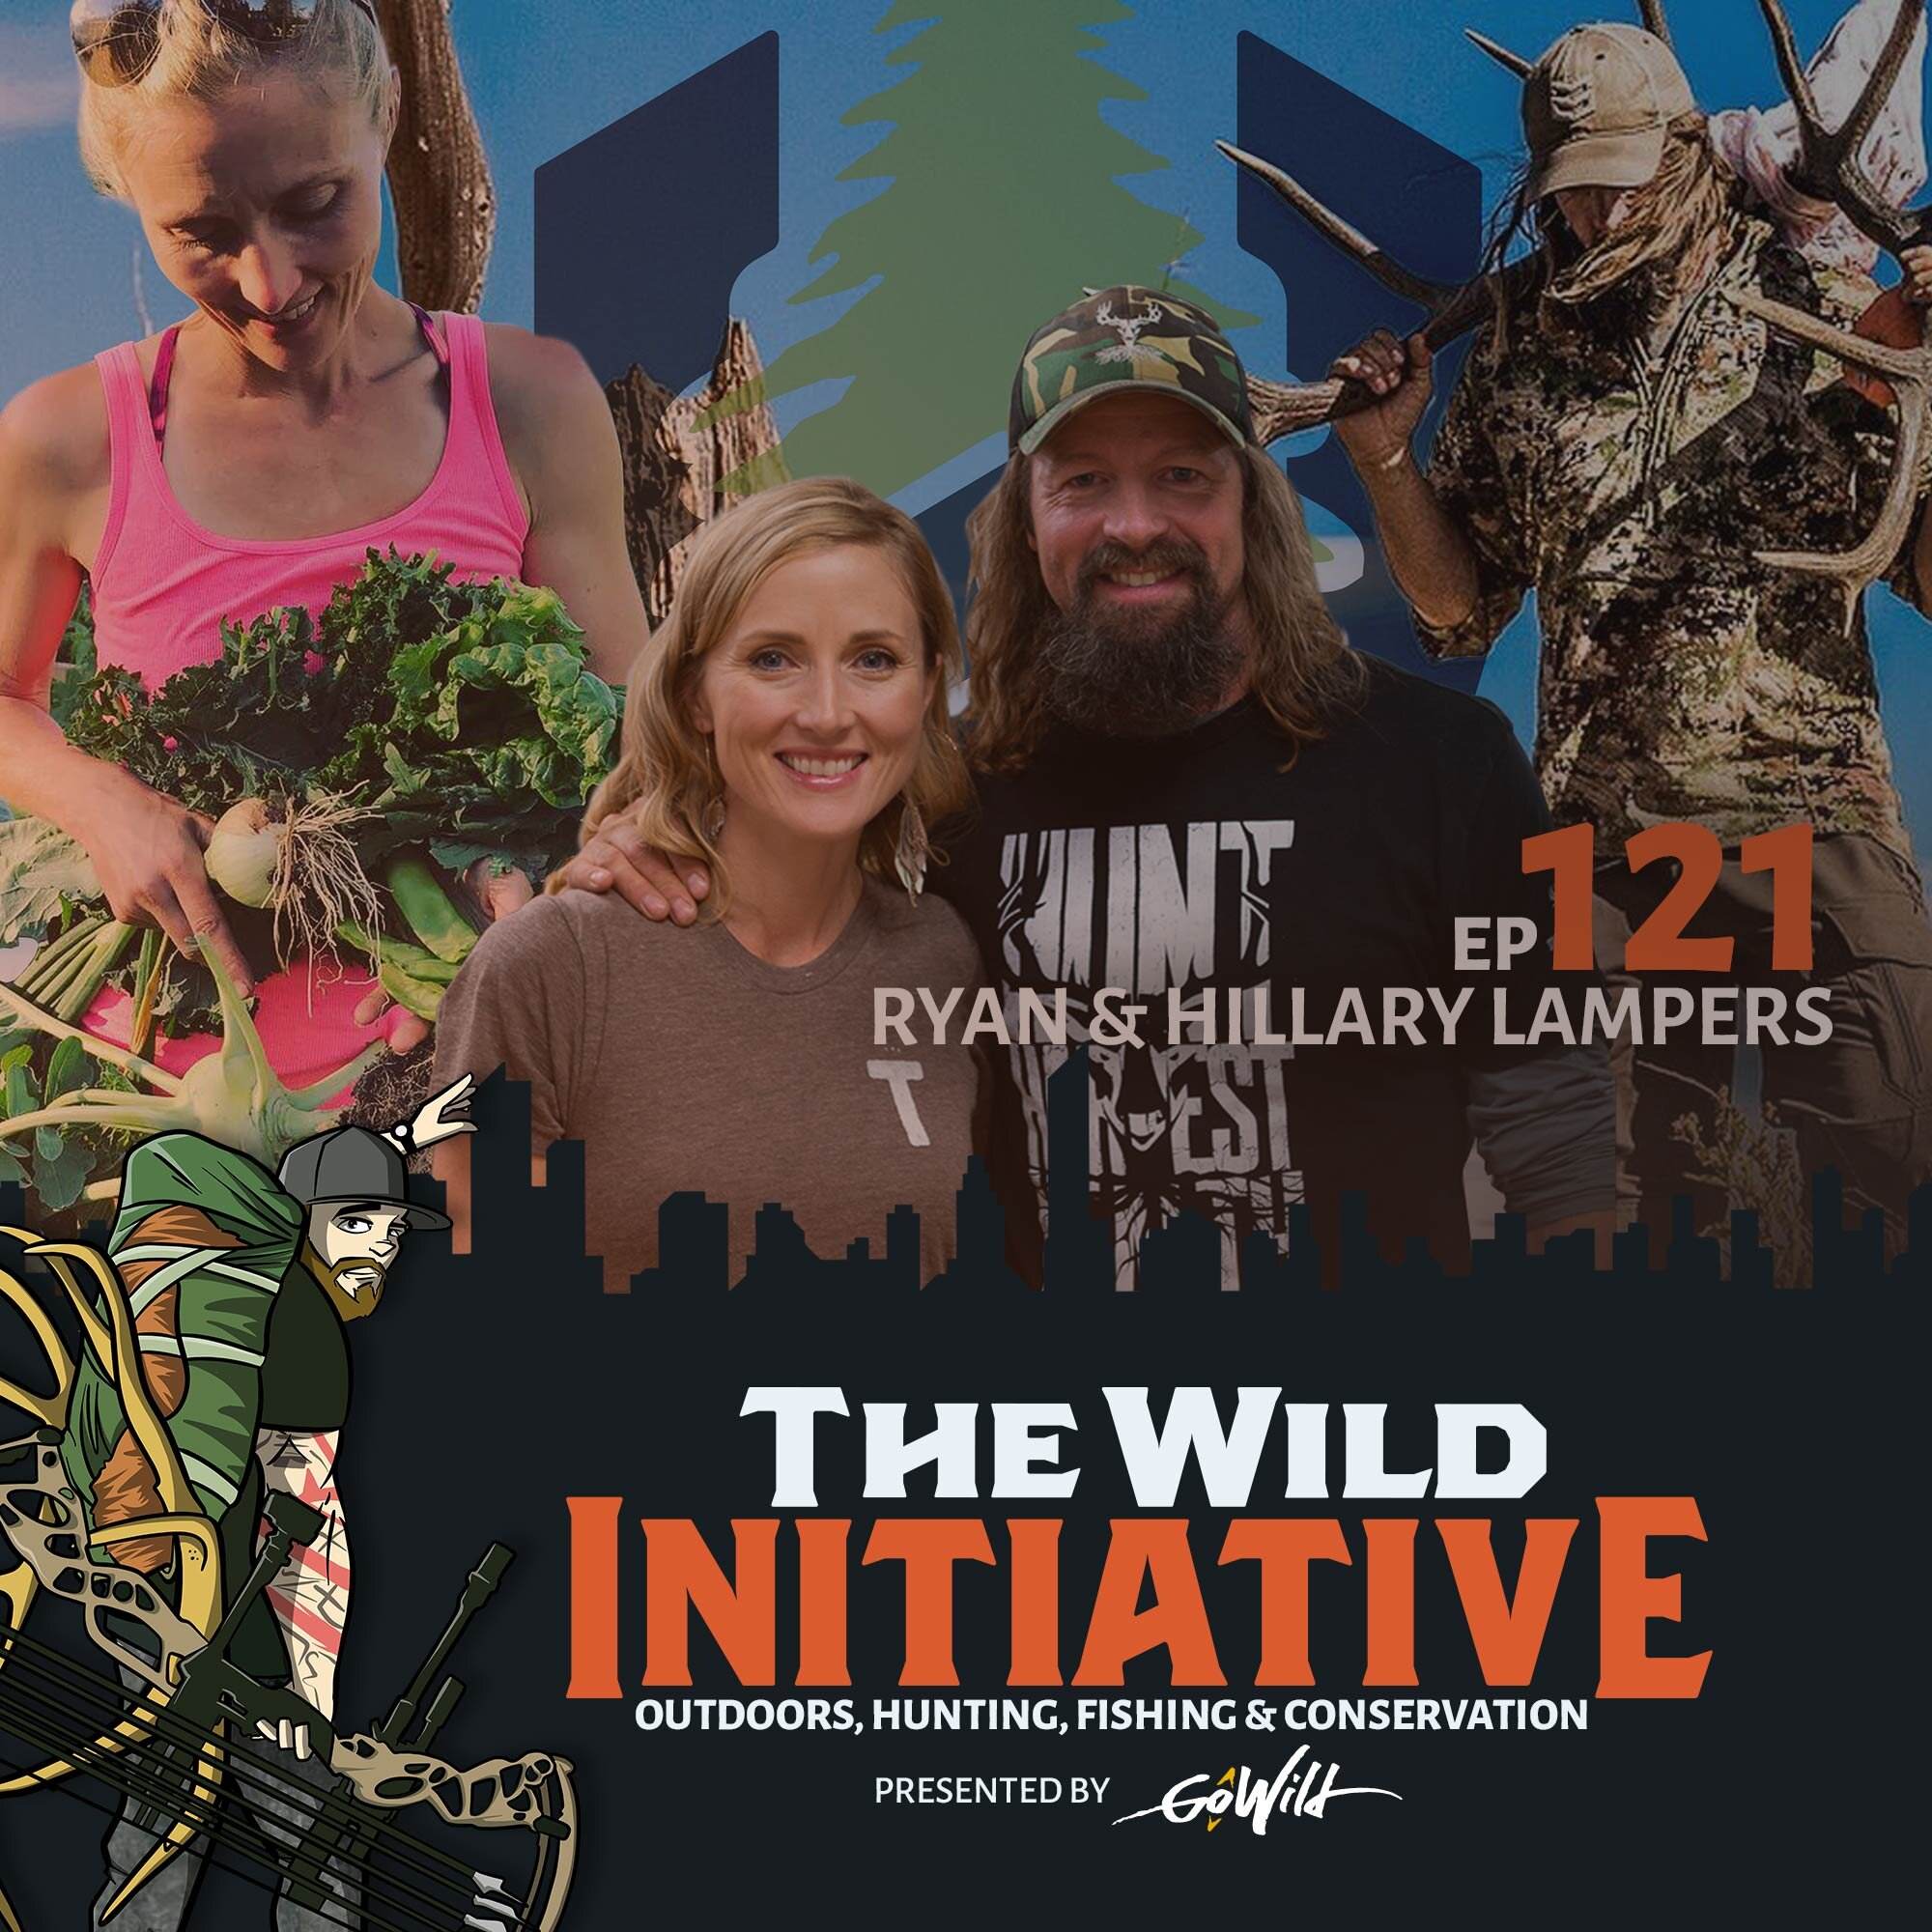 Ep 121 Ryan & Hillary Lampers - The Wild Initiative - Outdoors, Hunting, Fishing & Conservation